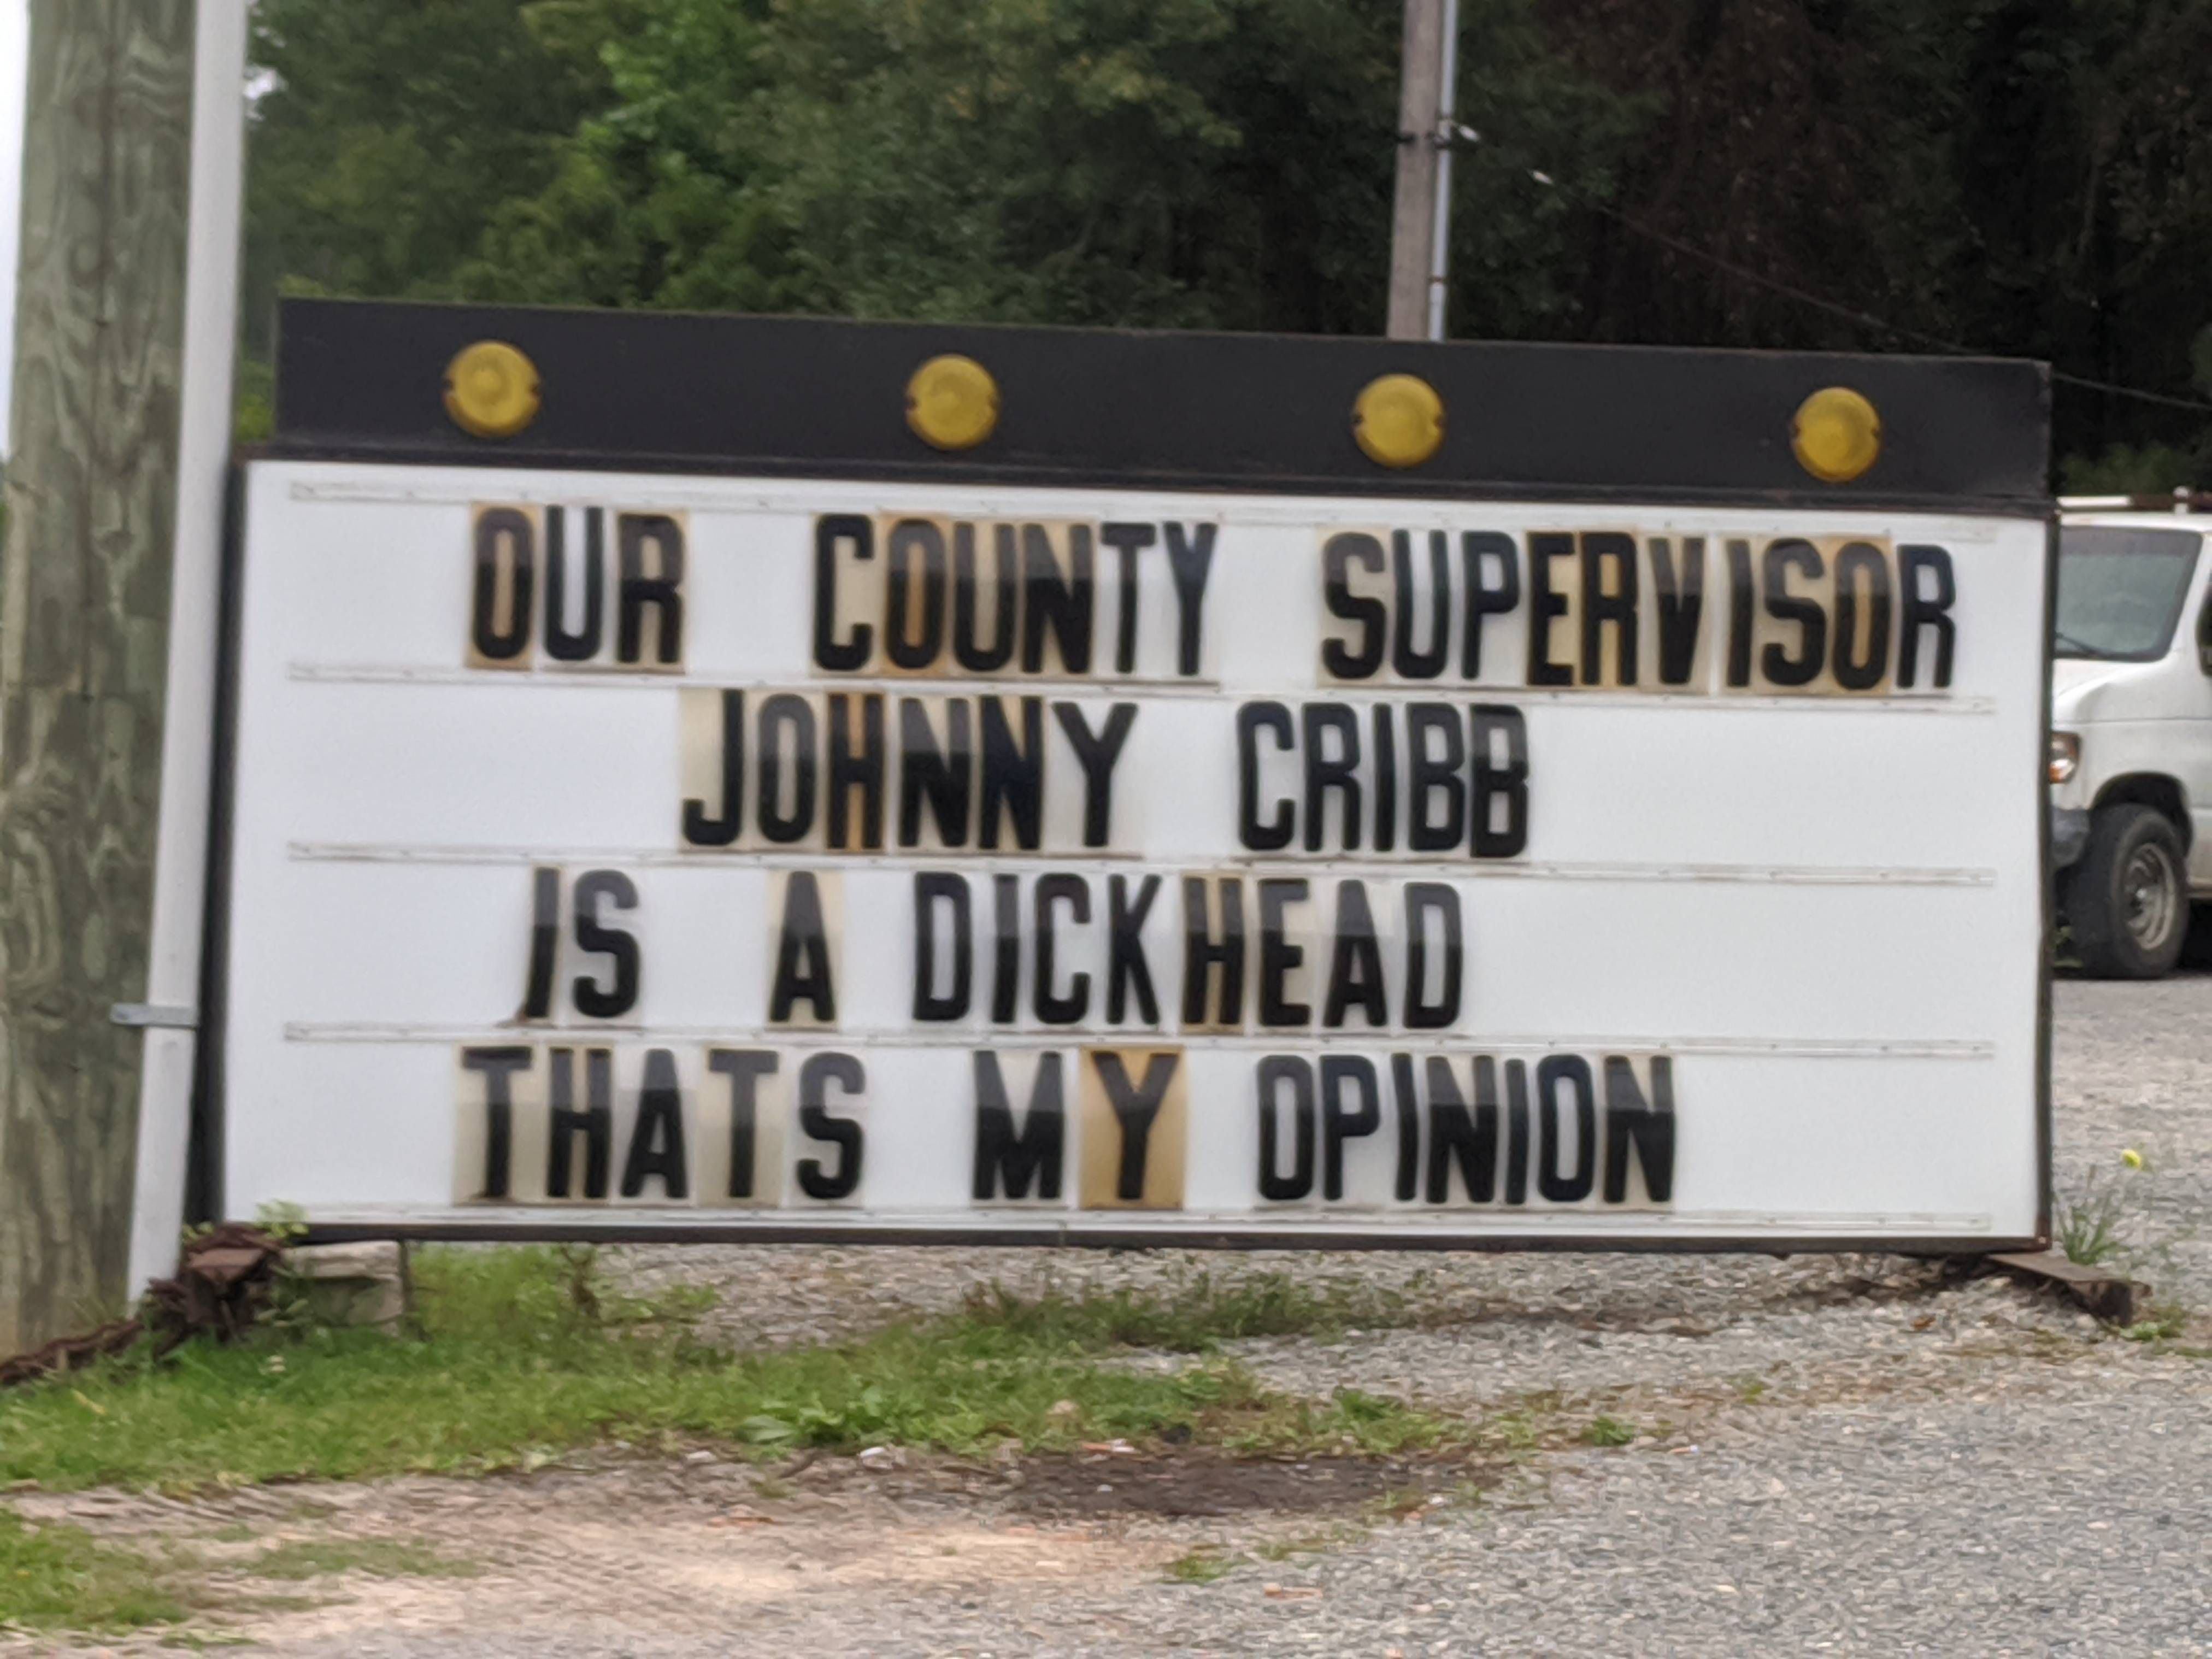 Local business has opinions